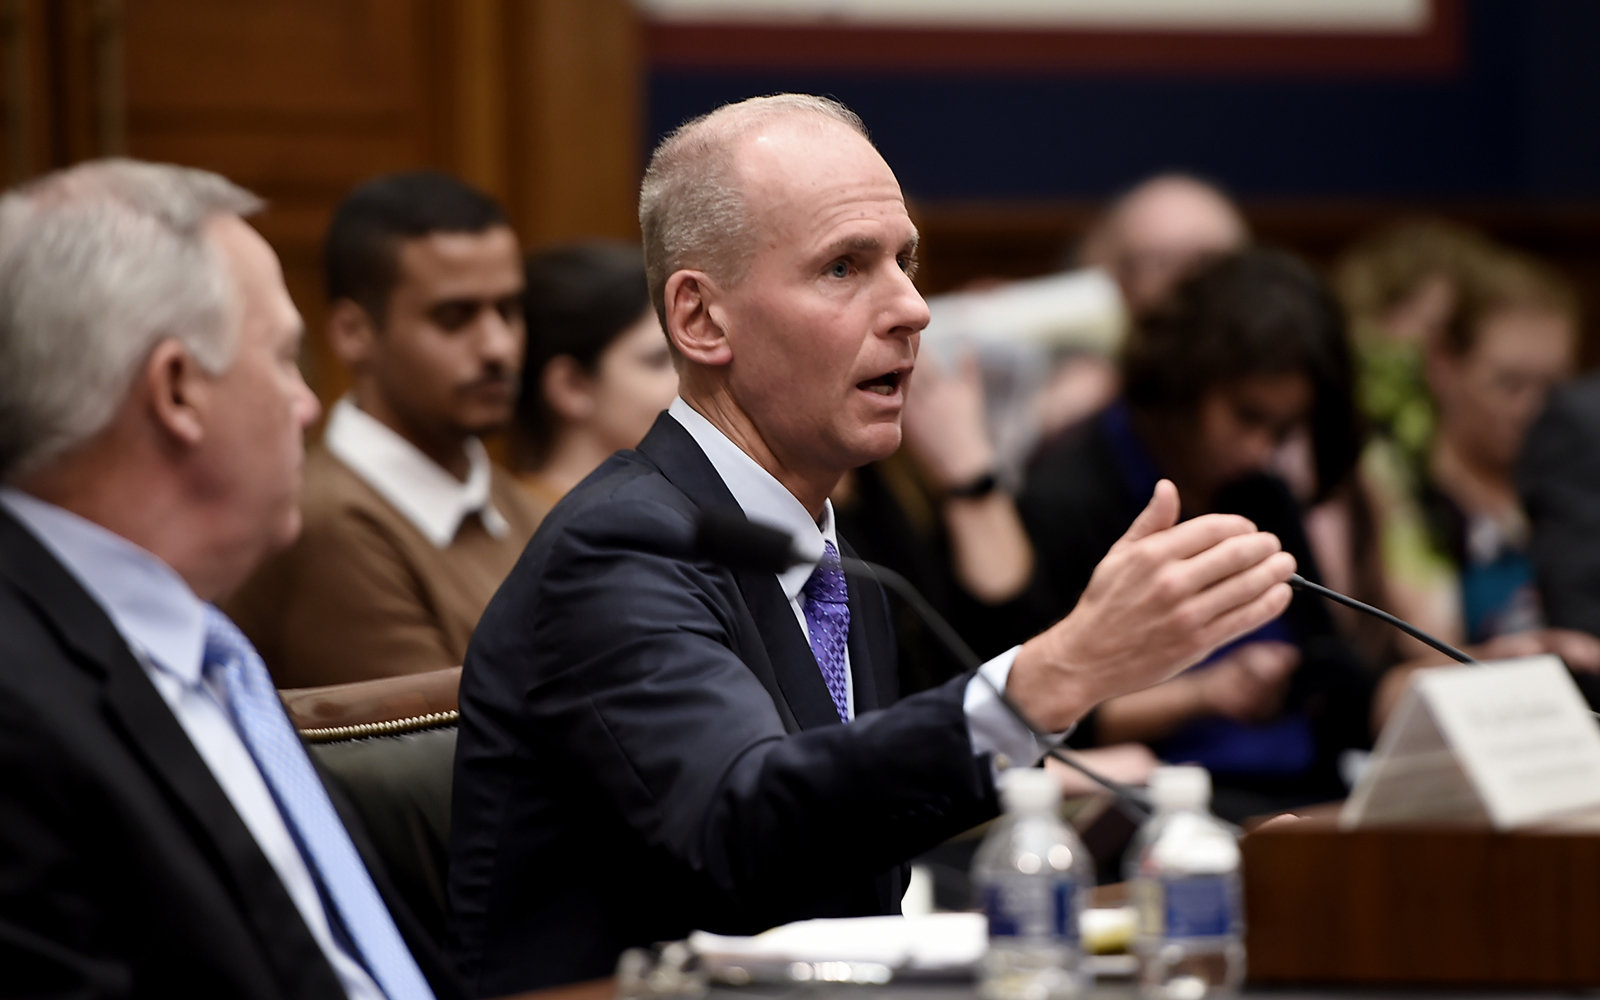 Boeing CEO, Dennis Muilenburg, Apologizes To Victims' Families